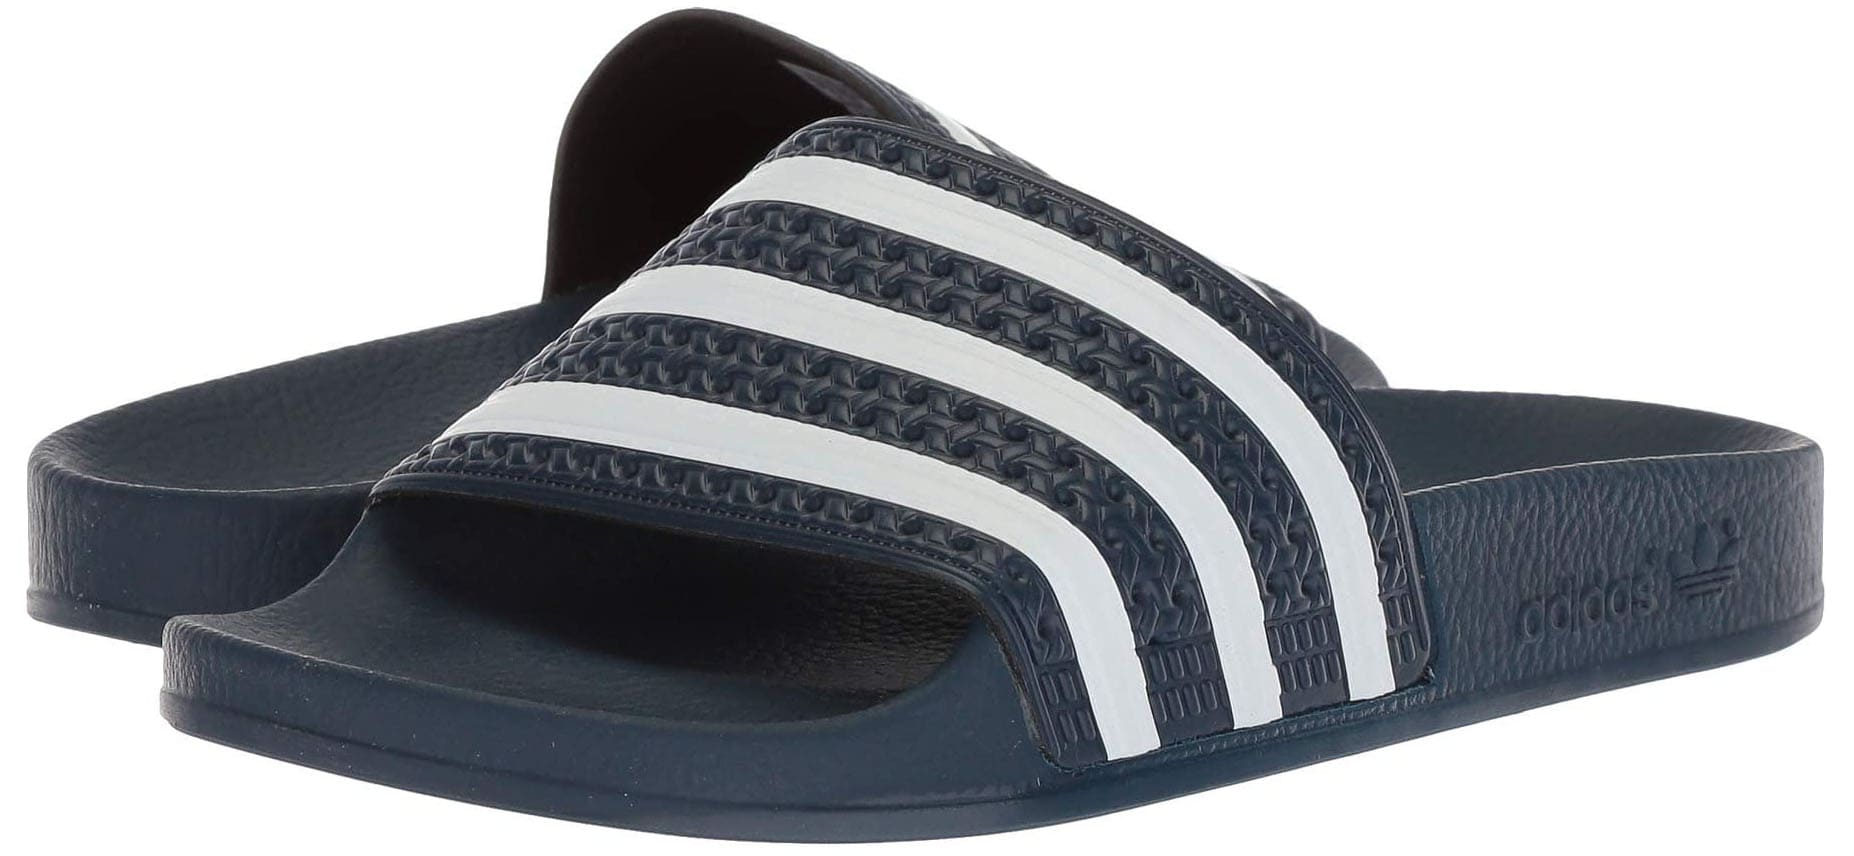 A comfy slide sandal with a contoured footbed and PU outsole for durability and traction